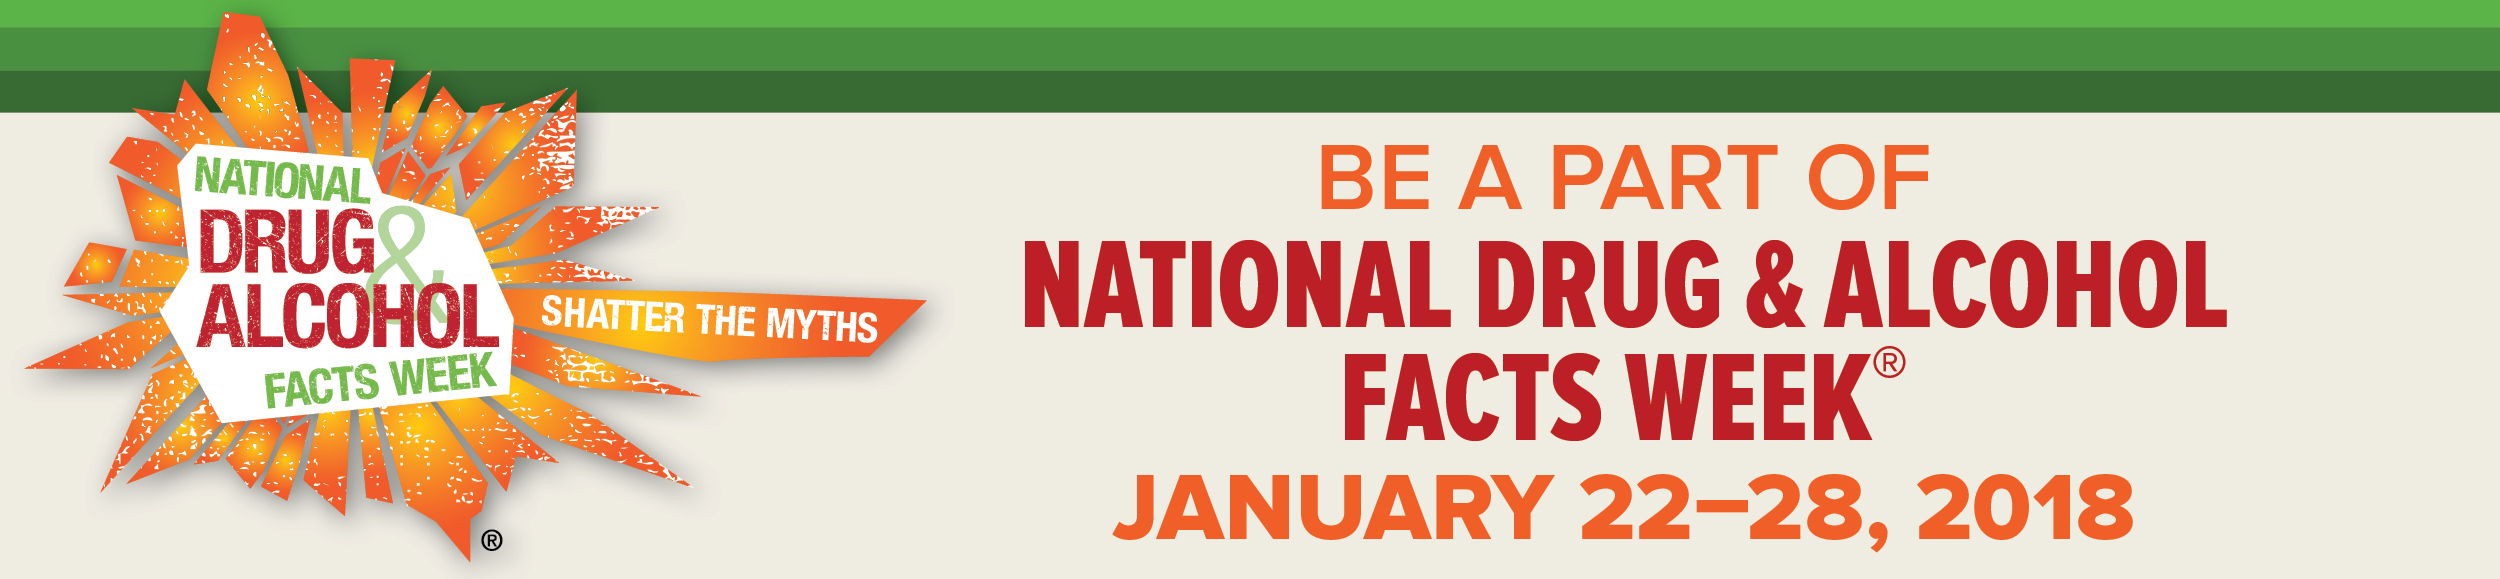 National Drug and Alcohol Facts Week, January 22-28, 2018